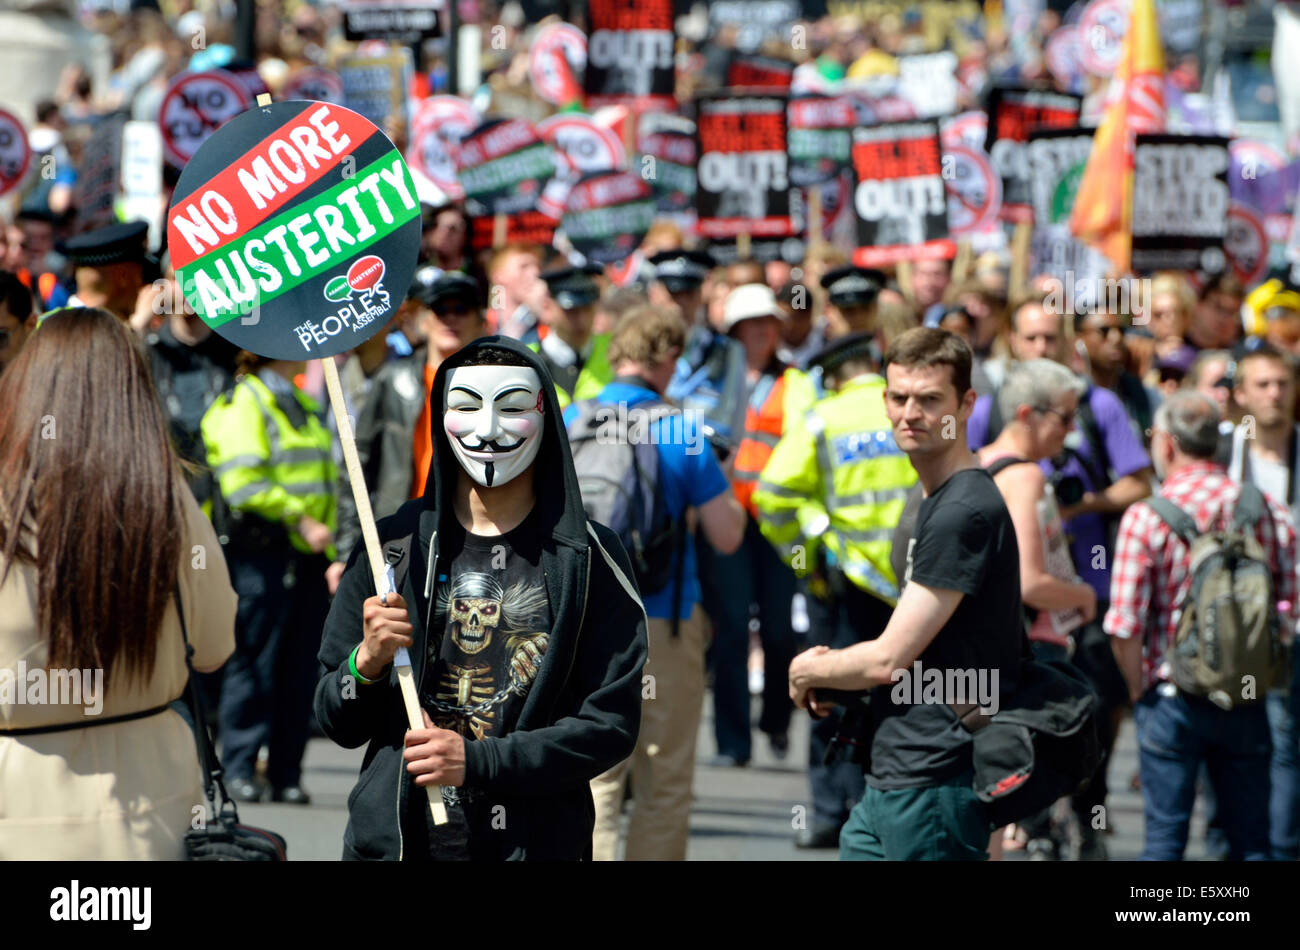 Protester on V mask with No Cuts placard at an anti-austerity march through London, 2014 - Stock Image